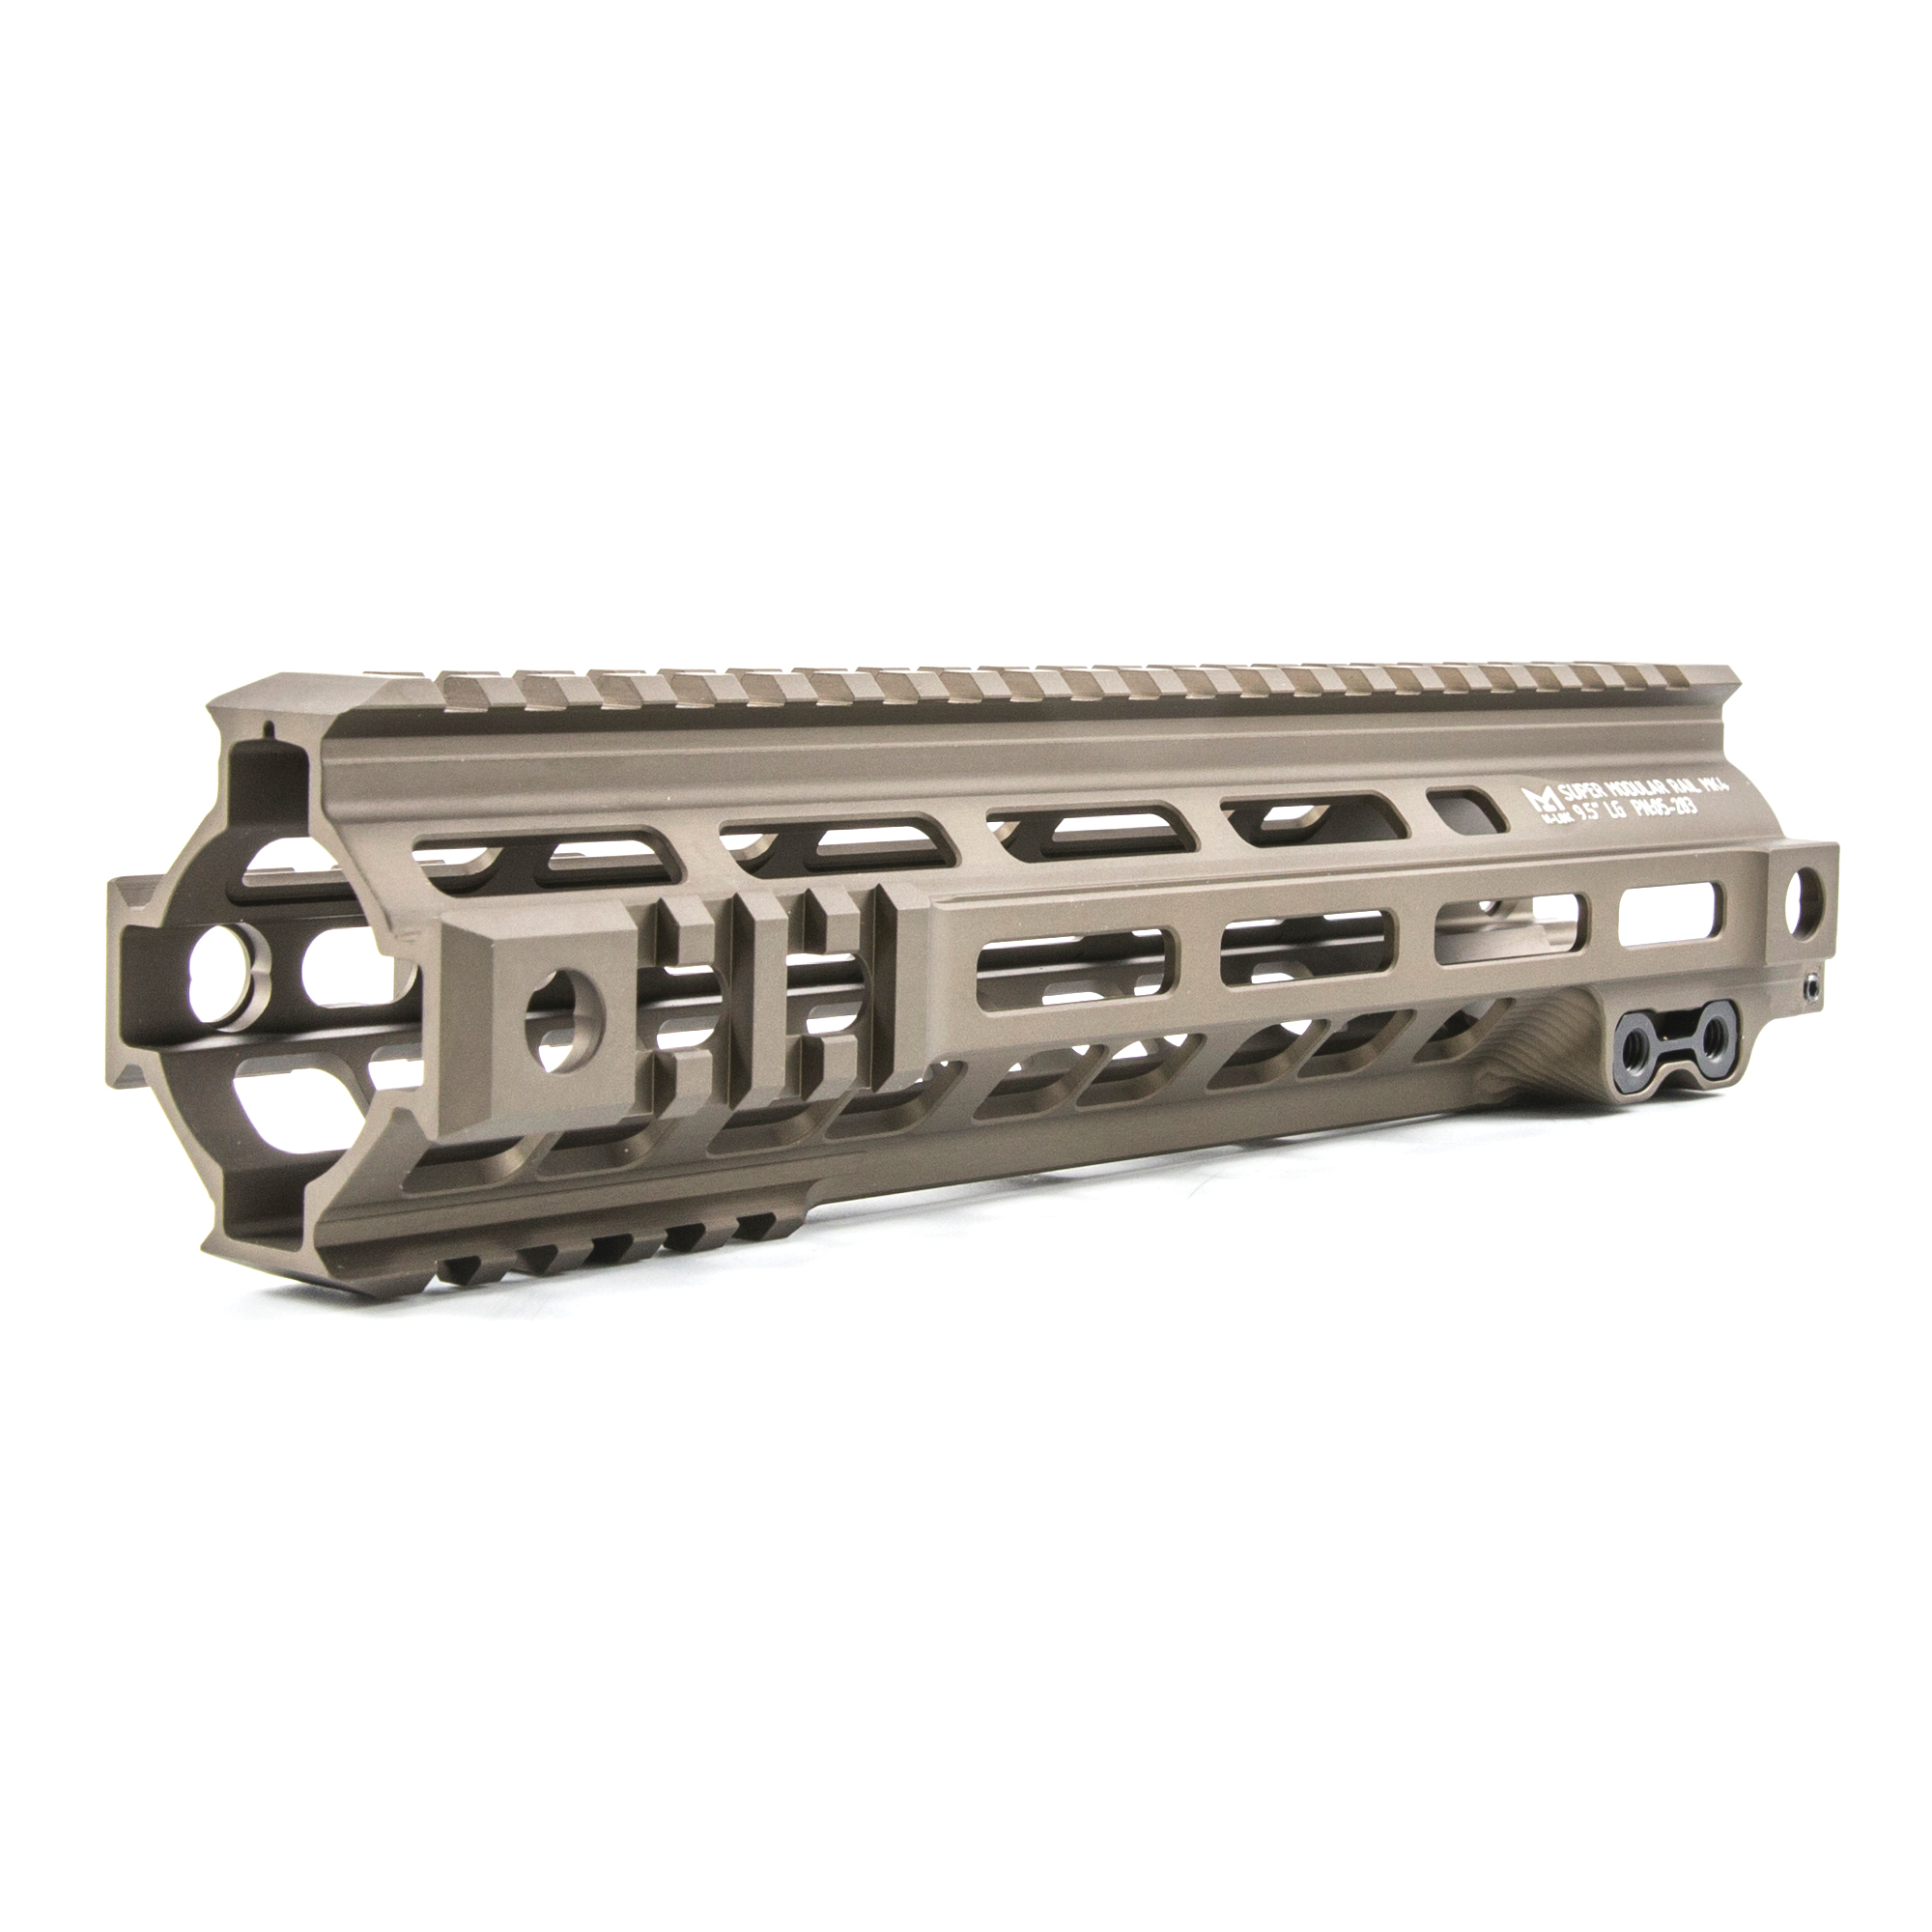 """The Super Modular 9.5"""" Rail (SMR) MK4 M-LOK(TM) is Geissele's ultra-lightweight M-LOK option. These rails are purpose-built and feature integrated M1913 picatinny rail sections at the fore of the rail in the 3"""" 6 and 9 o'clock positions. Maximum venting for heat dissipation also dramatically reduces the rail's overall weight"""" while maintaining its same strong and rigid platform. Utilizing Magpul's M-LOK technology at the 3"""" 6"""" and 9 o'clock positions"""" as well as the upper 45 quadrants. The SMR MK4 is both versatile and modular"""" allowing the user to tailor their platform to his or her unique needs. The SMR MK4 also features Geissele's proprietary 2.25"""" long barrel nut. This increases the surface contact where the rail interfaces with the receiver and creates a platform that can be trusted to be straight and true the entire length of the free float rail. This increases accuracy and zero repeatability during disassembly and reassembly when performing maintenance."""